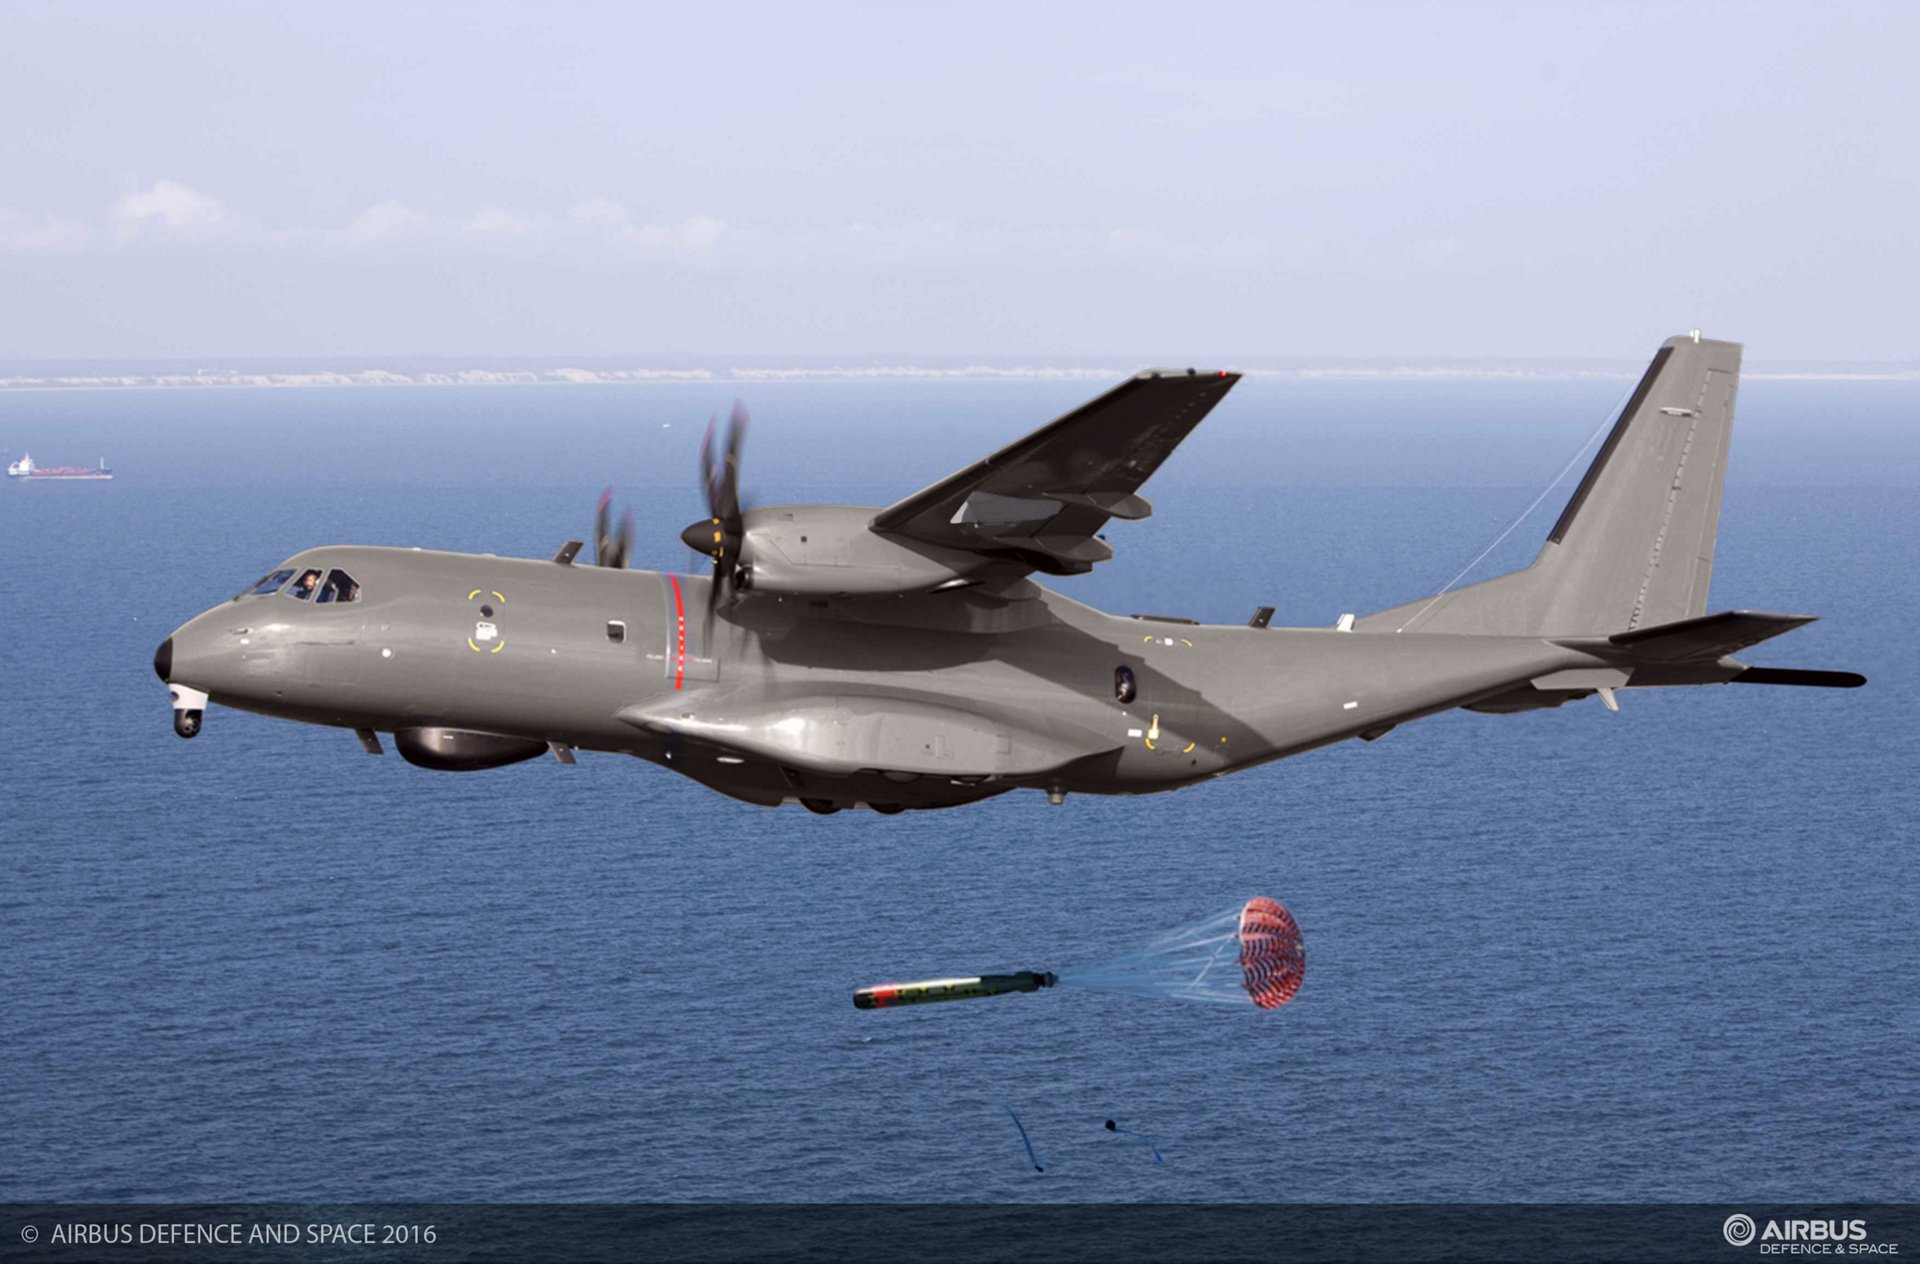 A C295 Maritime Patrol Aircraft (MPA) launches a torpedo in flight.